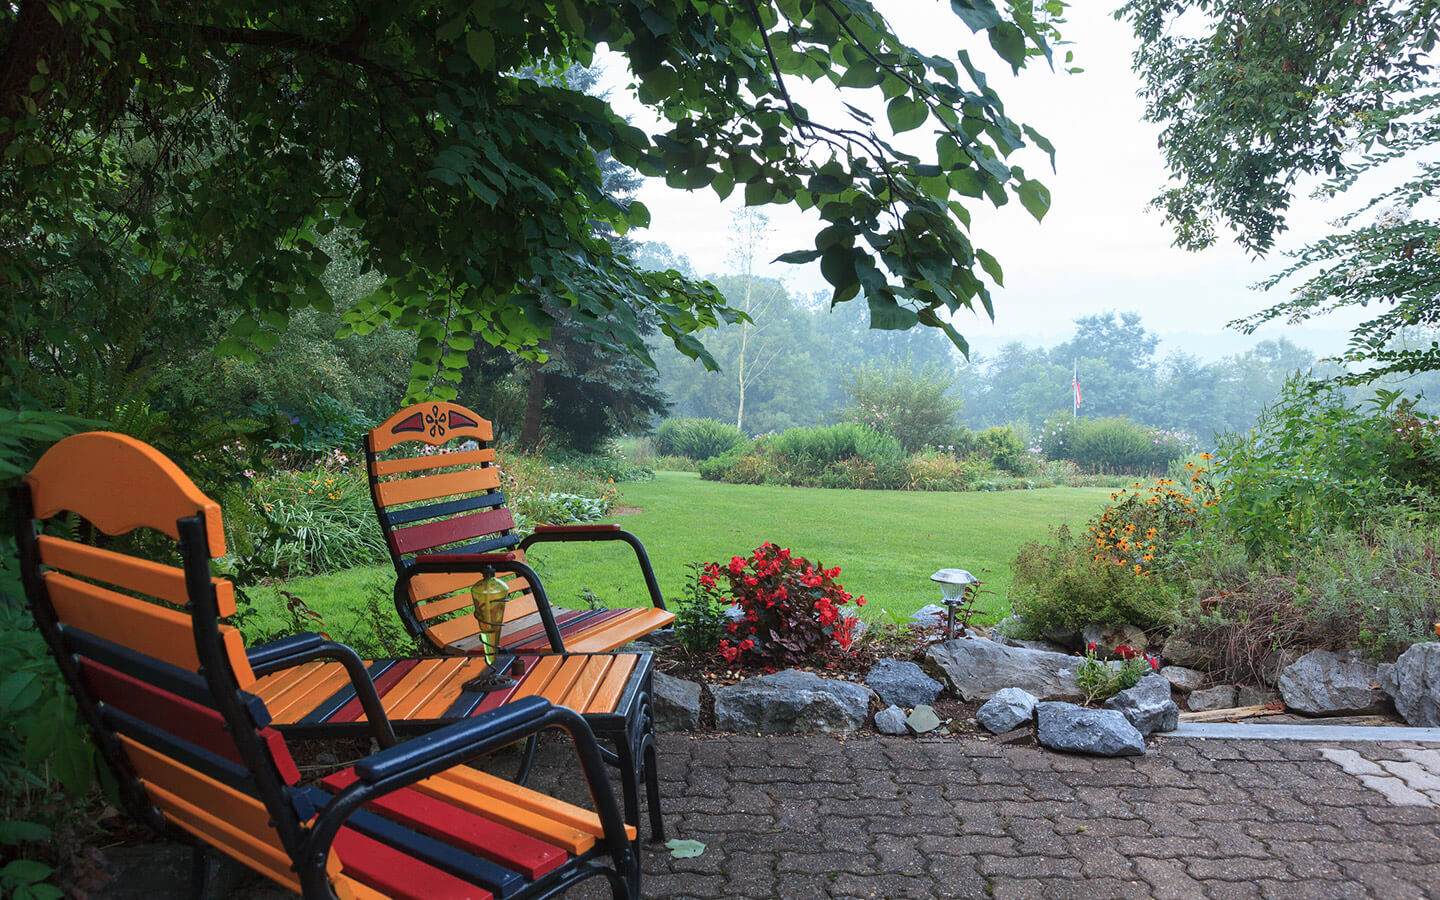 Two chairs on a patio in the garden at our Amish Country bed and breakfast